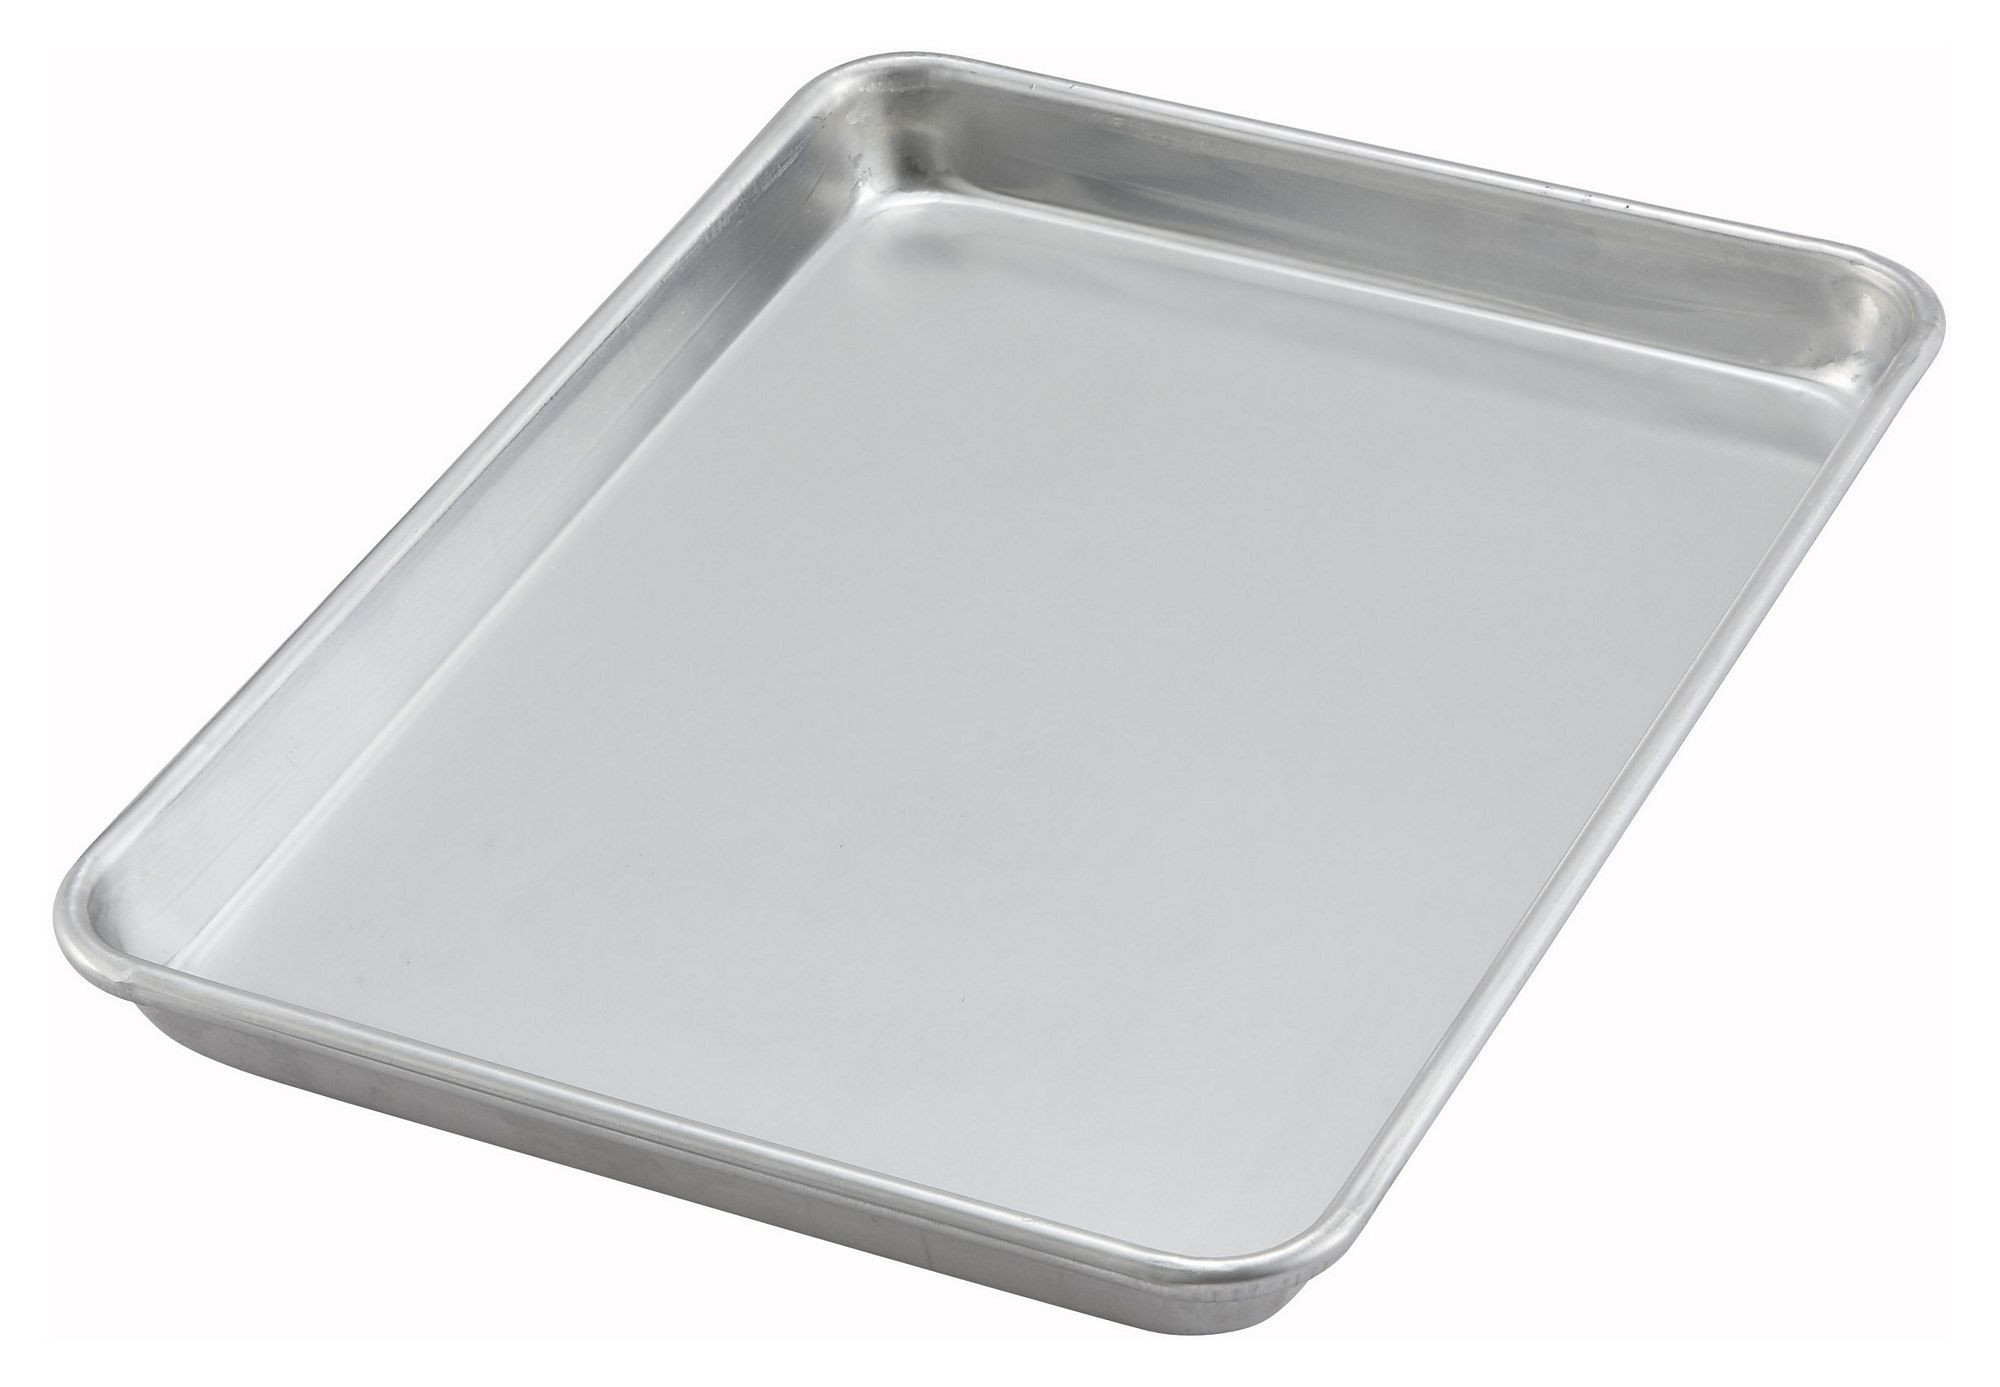 Quarter-Size 18-Gauge Aluminum Sheet Pan - 9-1/2 X 13 (NSF)